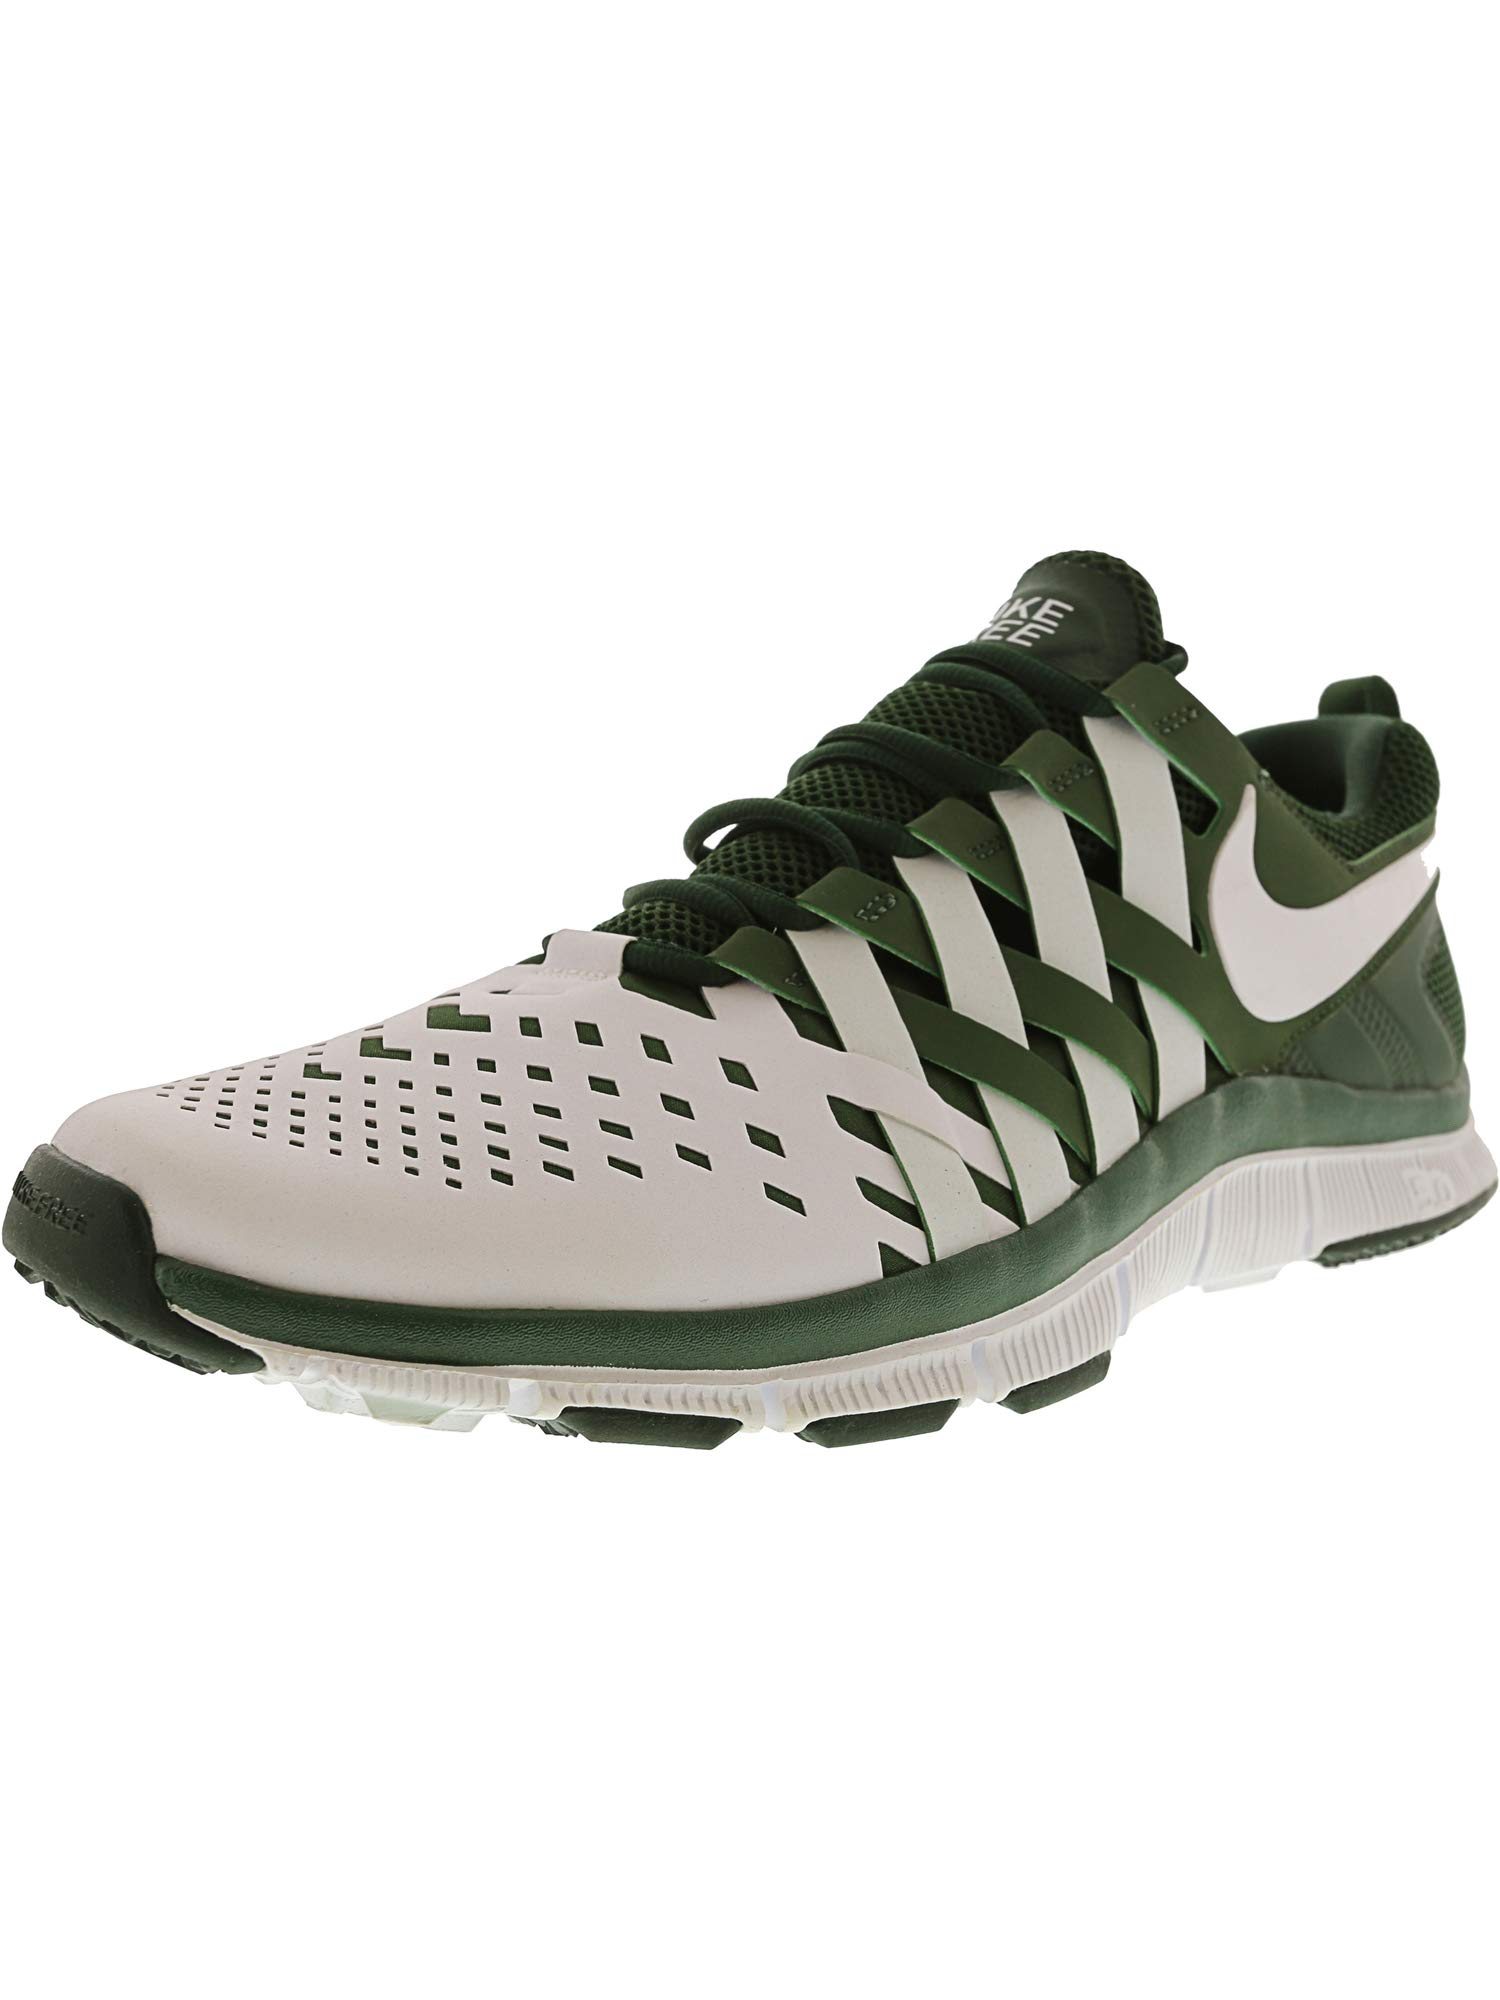 newest 9cbdf 92586 Nike Men's Free Trainer 5.0 Tb Deep Forest/White Ankle-High Tennis Shoe -  15M